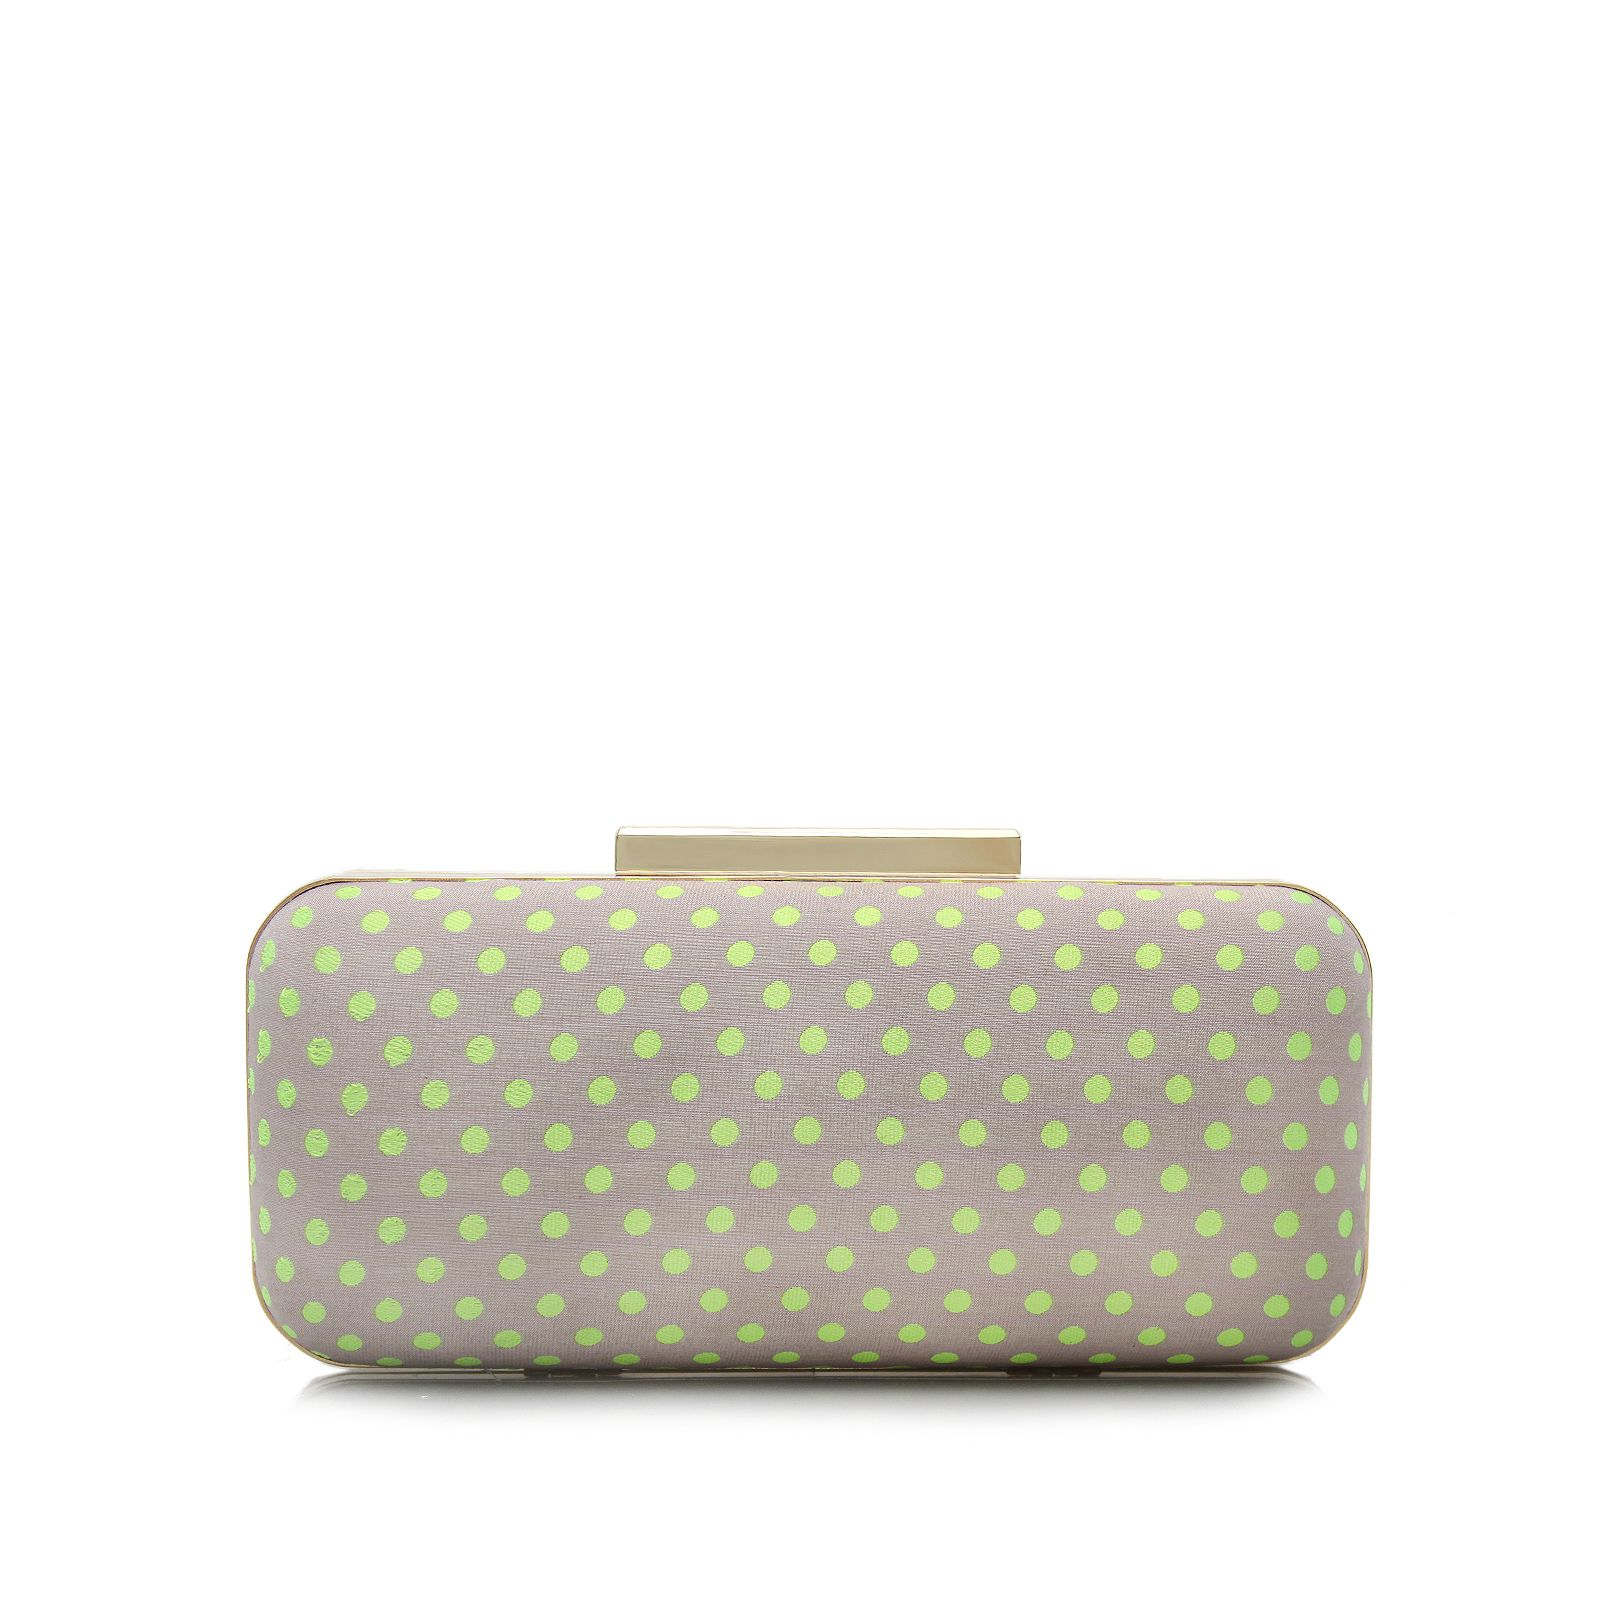 Bare polka dot clutch bag